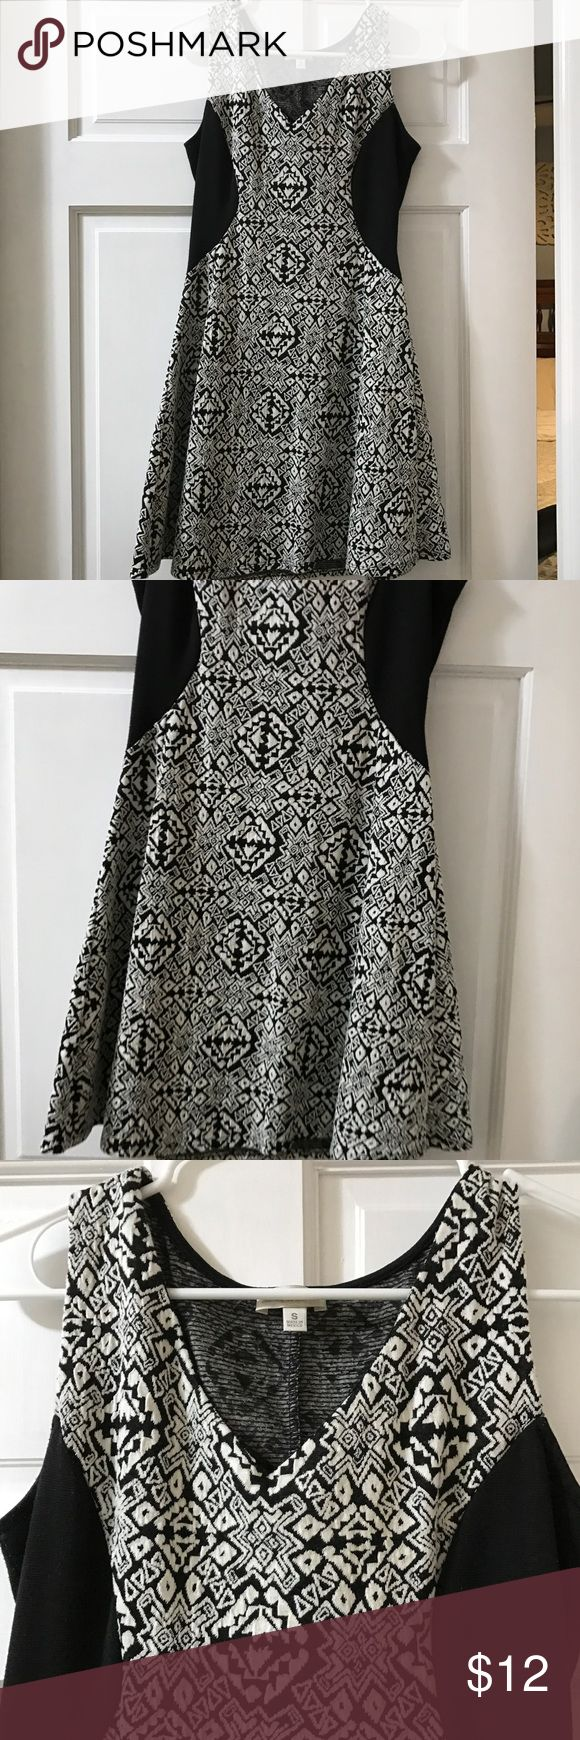 Women's Black and White short, v-neck dress Black and White Charming Charlie's dress. V-neck in the front. Knitted and stretchy texture. Gently worn, great condition and very comfortable. Charming Charlie Dresses Mini